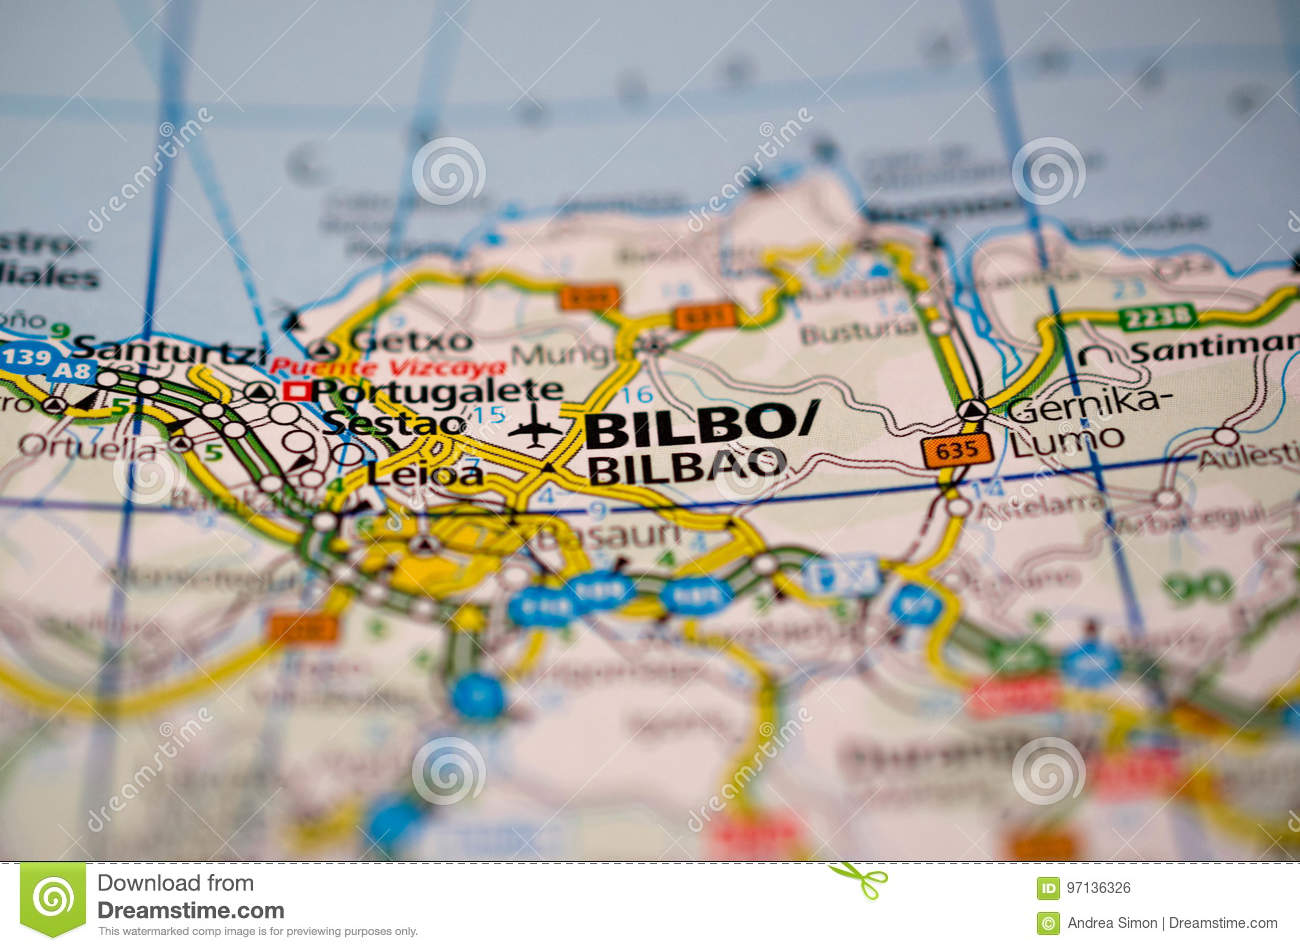 Bilbao On Map Of Spain.Bilbao On Map Stock Photo Image Of Street Transport 97136326